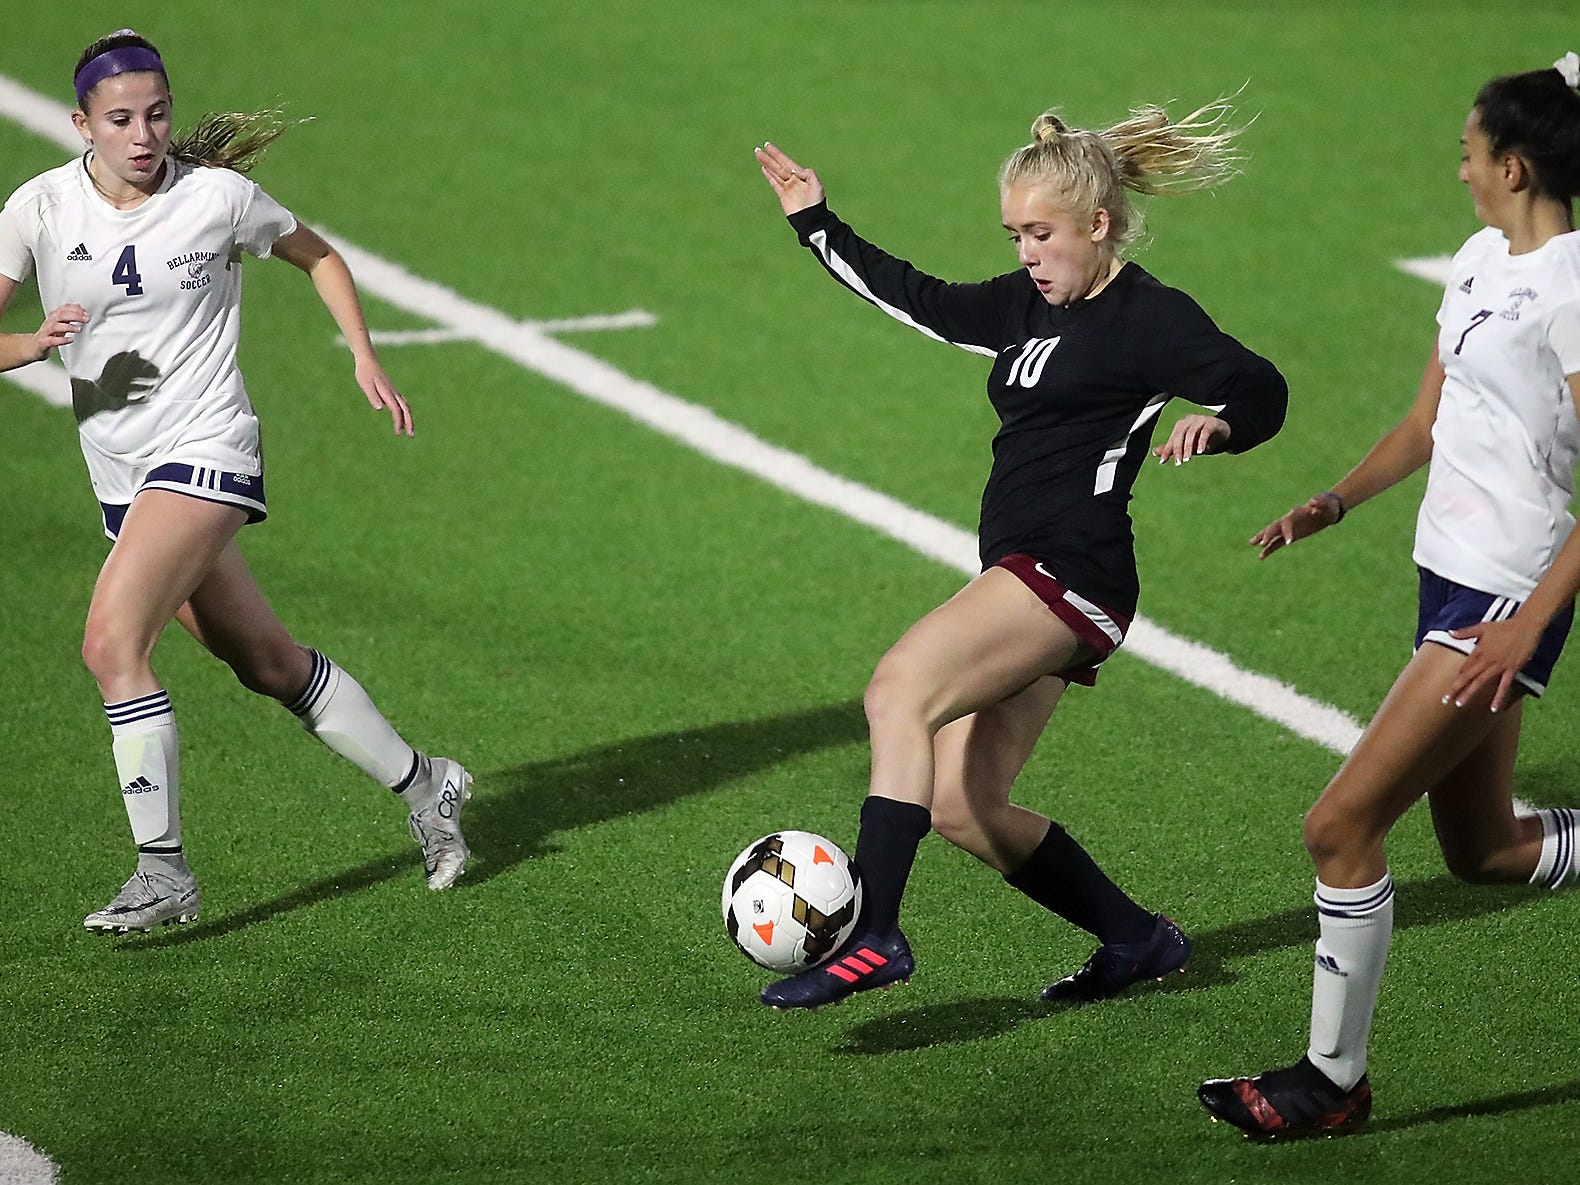 South Kitsap's Mackenzie Sinclair (10) moves the ball down the field between Bellarmine's Gabi Hyman (4) and Acacia Judkins (7)  girls soccer in Port Orchard on Tuesday, October 23, 2018.